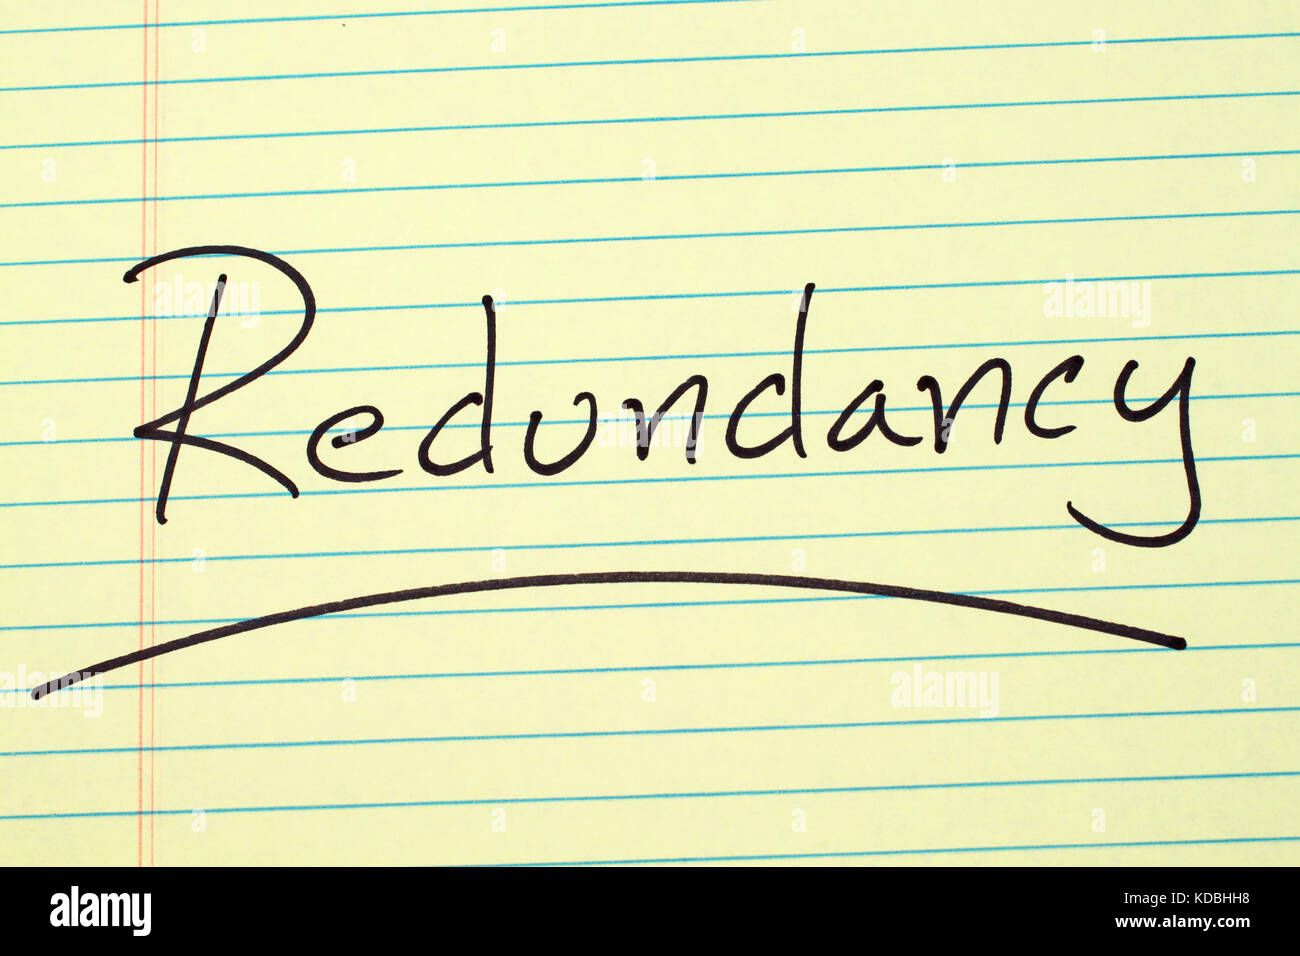 The word 'Redundancy' underlined on a yellow legal pad - Stock Image